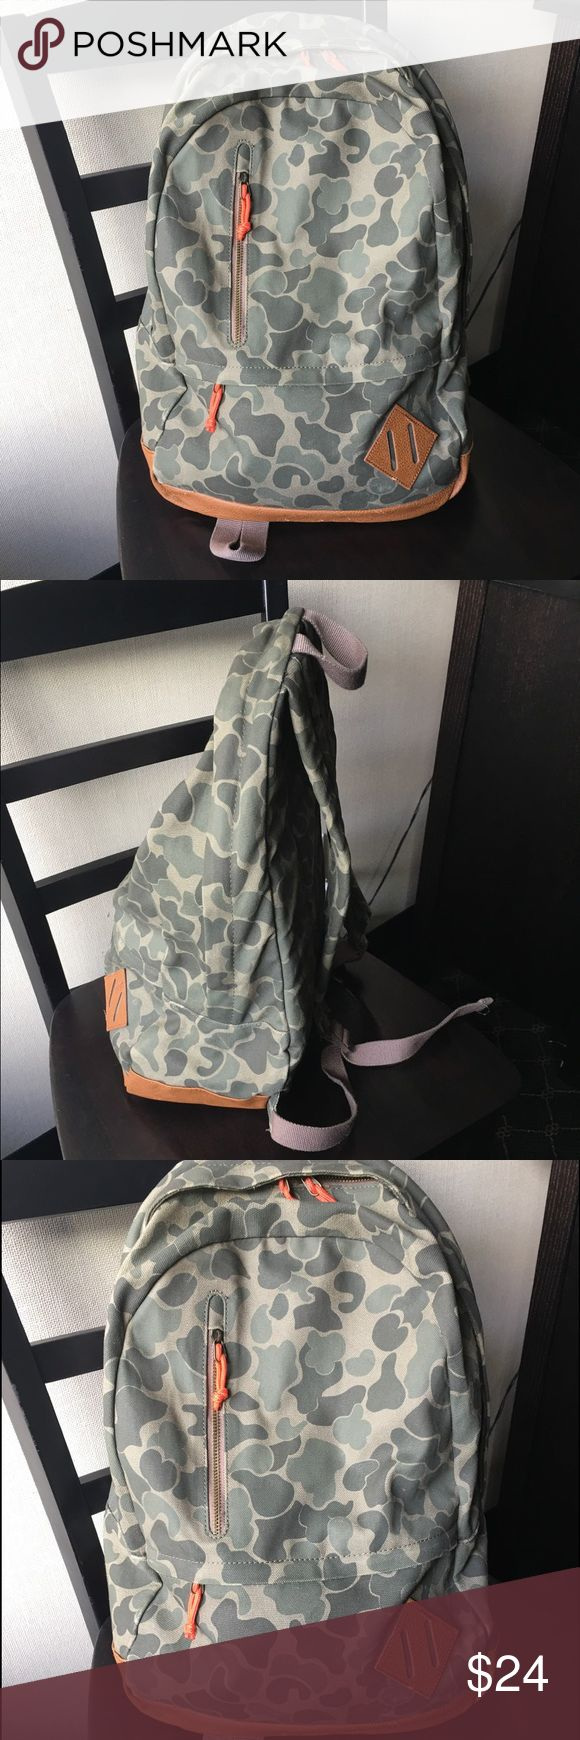 Standard military surplus supply store camo backpk Standard military surplus supply store light weight camouflaged backpack. Clean and hit the trail ready, happy hiking soldier! Bags Backpacks